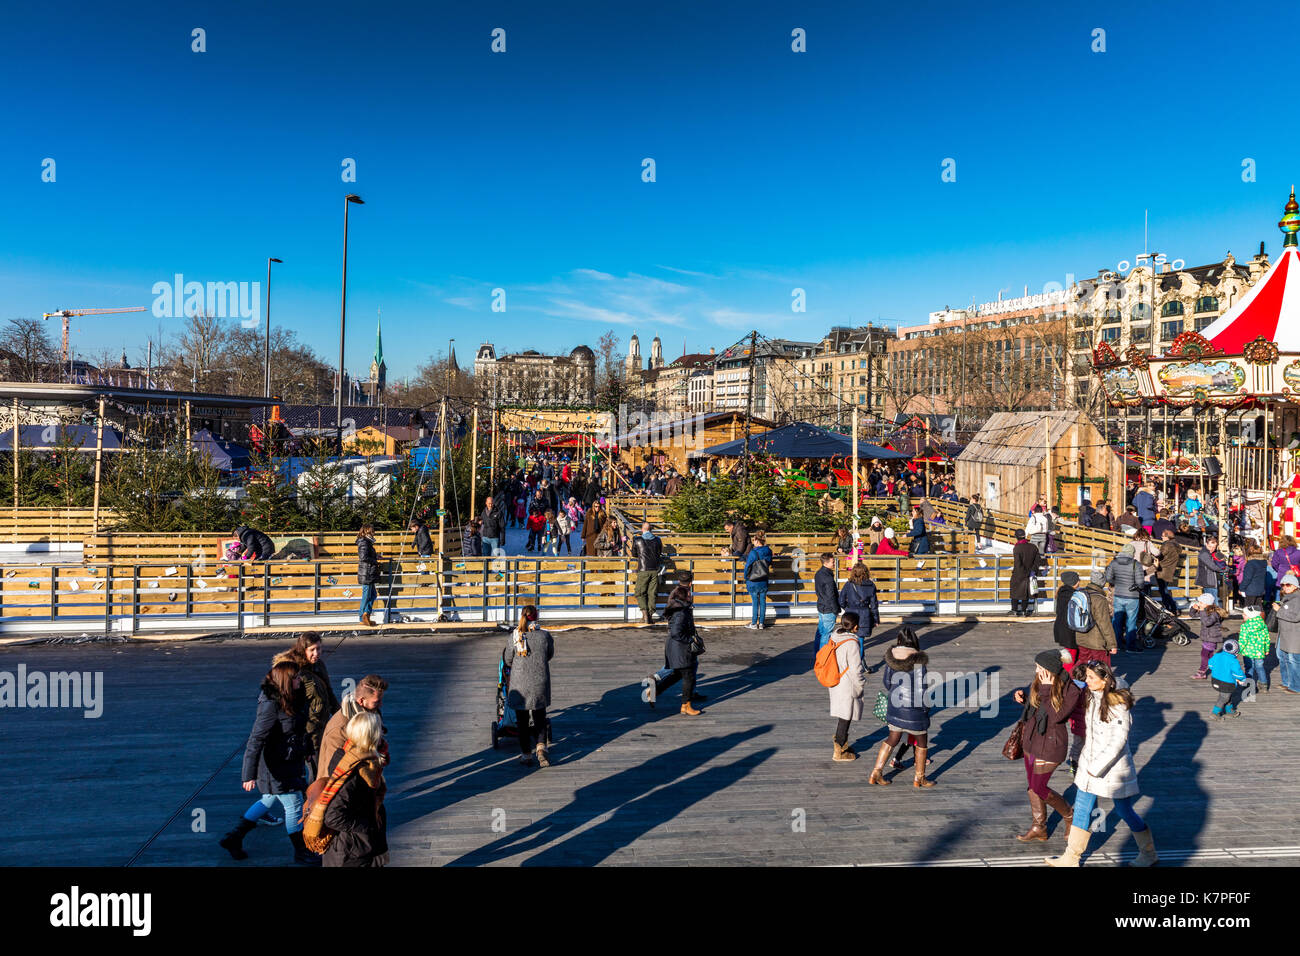 Zurich, Switzerland - 10 december 2016: Zurich Christmas Market in Bellevue - Stock Image